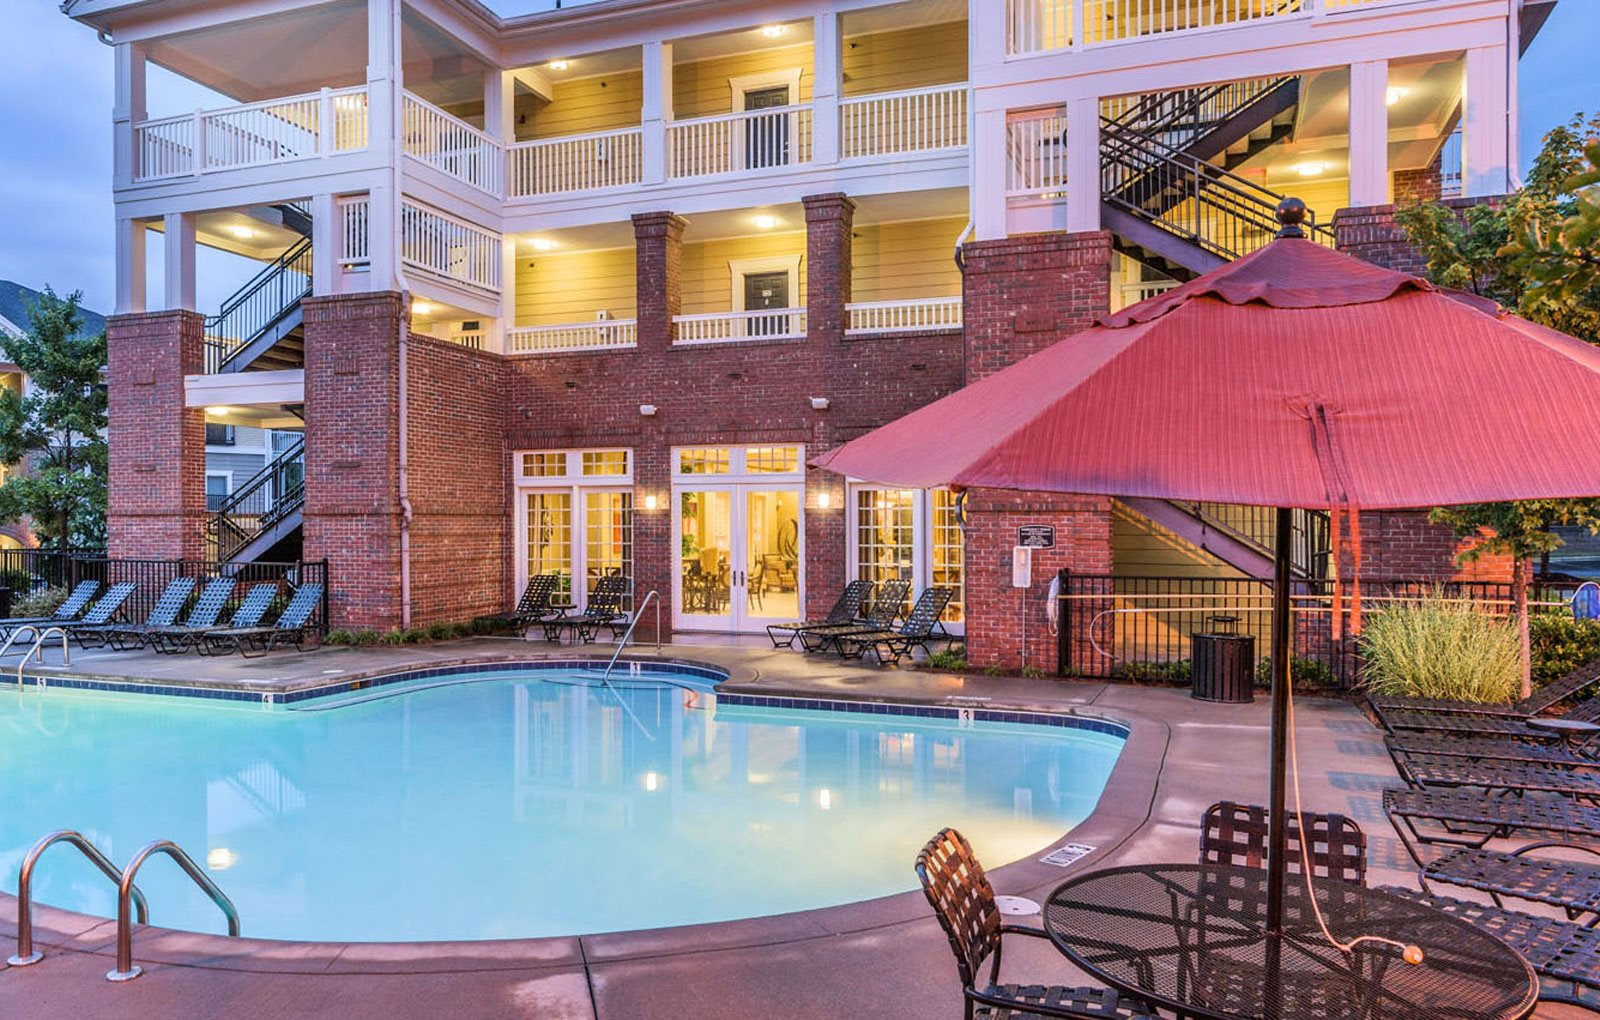 Sparkling pool at Rose Heights apartments, NC, 27613